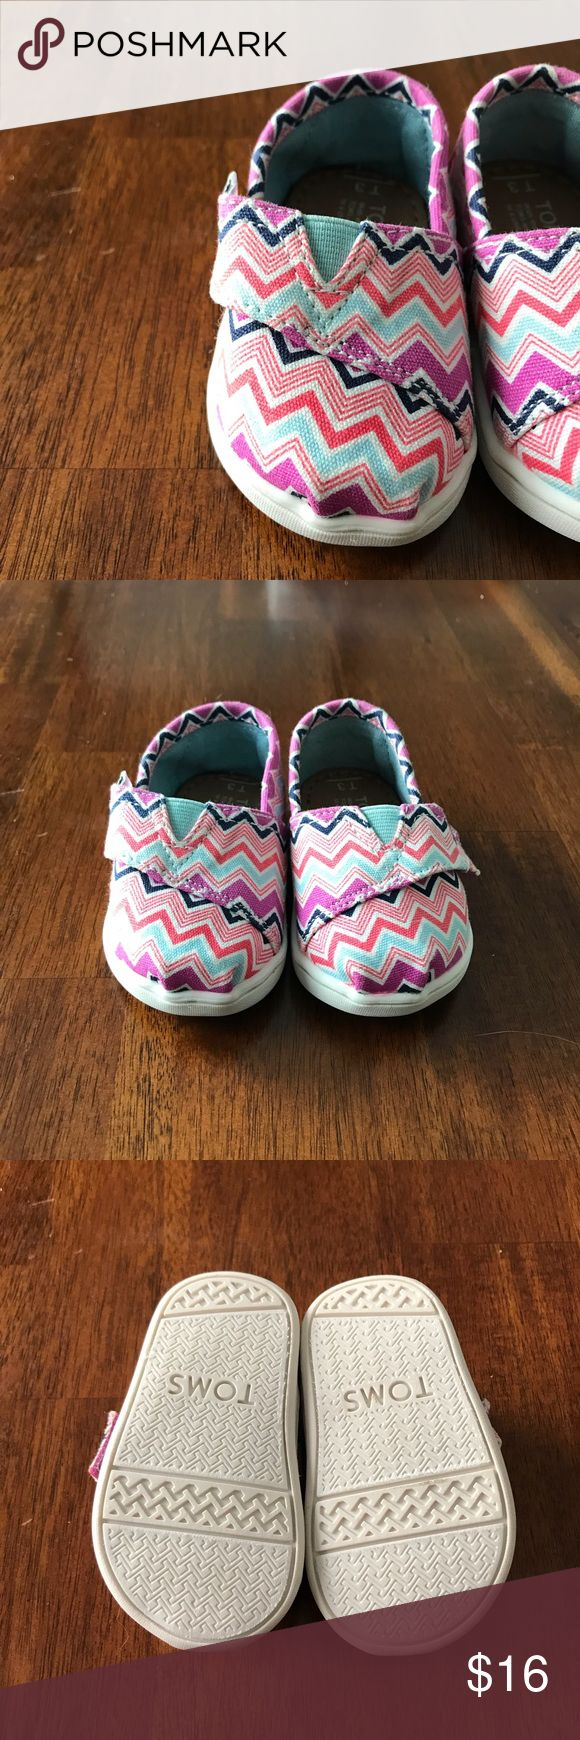 Chevron TOMS Size 3 Colorful chevron TOMS. Size 3. Excellent condition, maybe worn once. Canvas upper. Rubber soles. Velcro closure. Toms Shoes